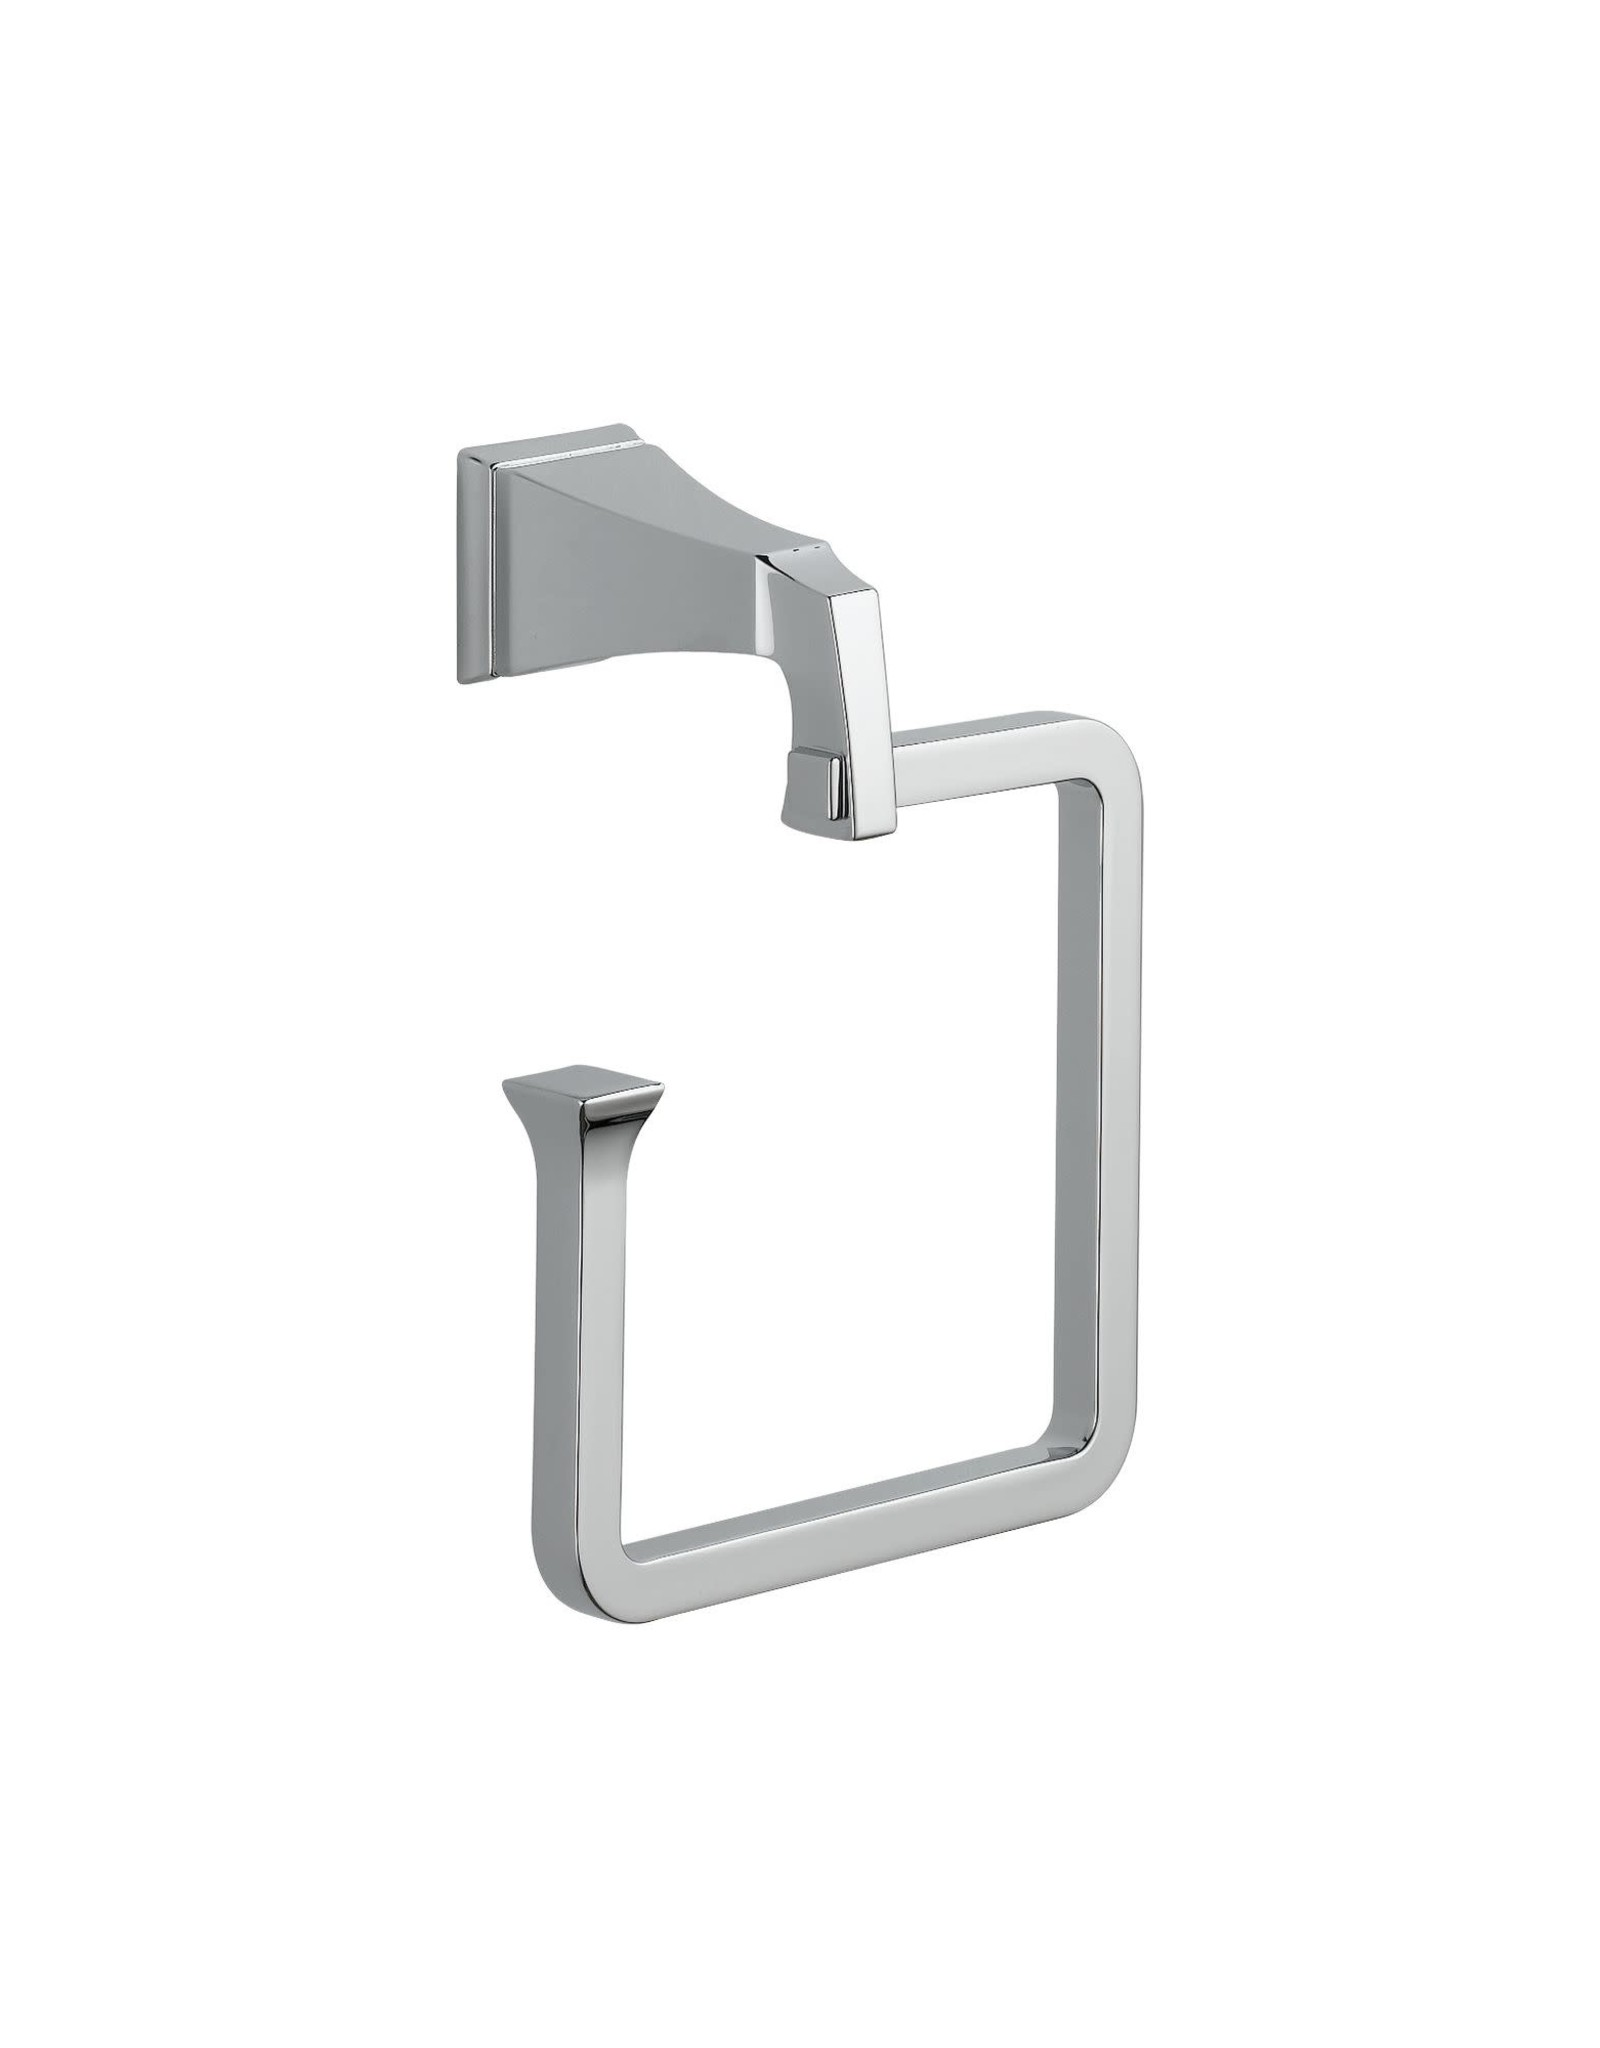 Delta DELTA DRYDEN - CHROME TOWEL RING